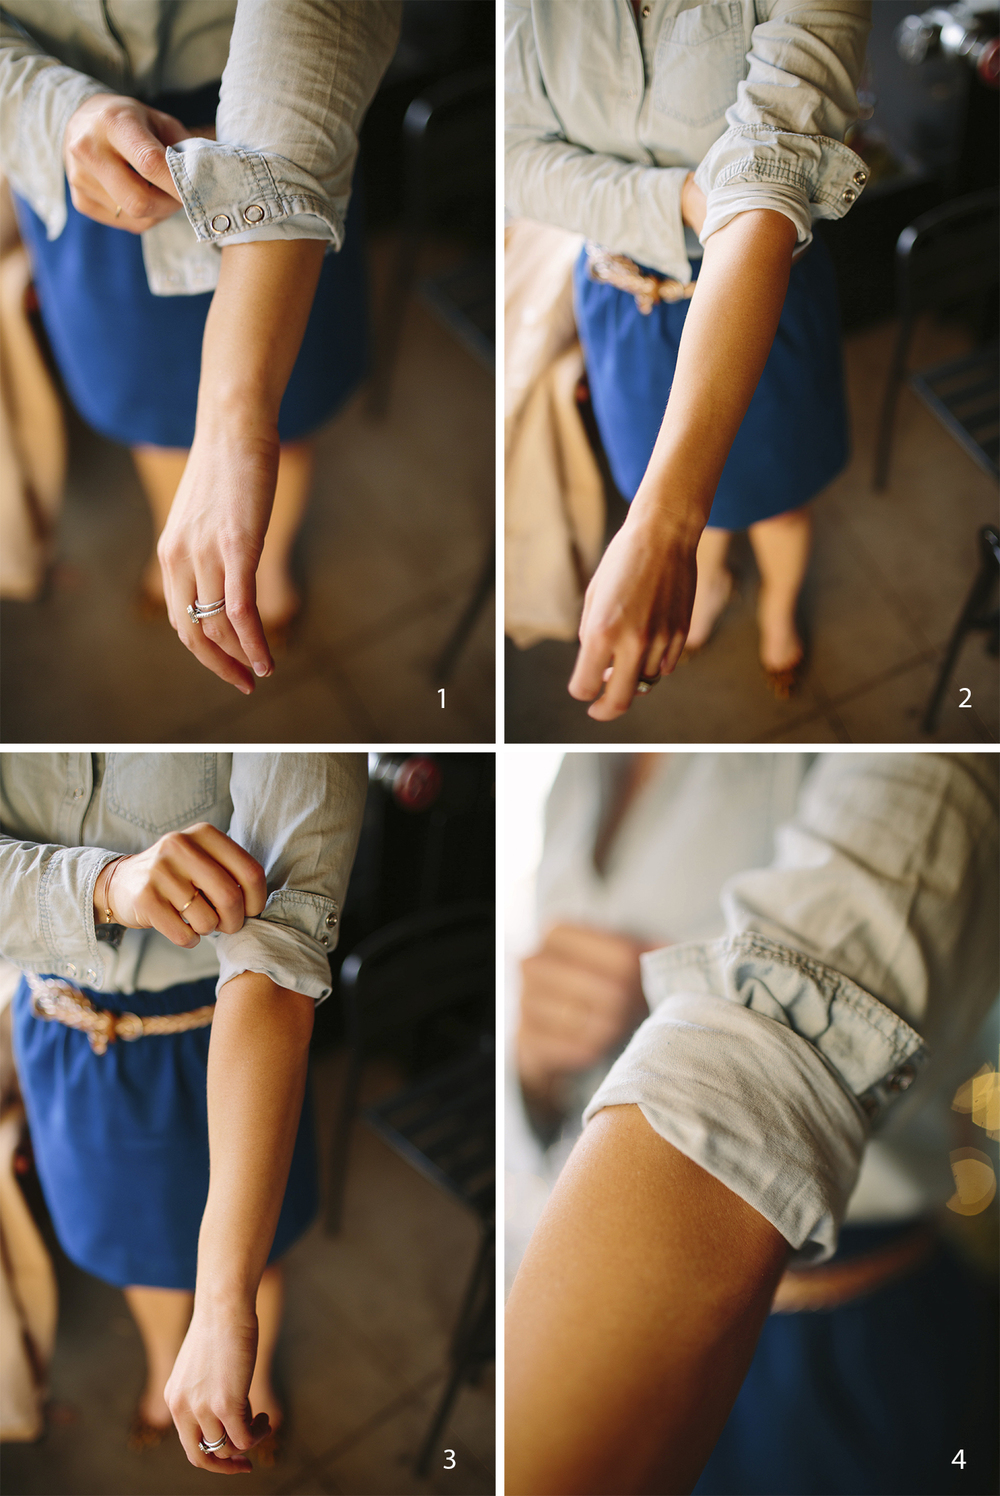 Here is a little trick to get your rolled sleeves to stay rolled, plus it looks super cute!  1. Fold the entire bottom of the sleeve up to just above your elbow. 2. Take the bottom of that fold and fold it up again, leaving some of the end of the sleeve exposed. 3. Adjust so that it lays flat and is comfortable. 4. Voila! You have a cute ruffled look and your sleeve will stay up all day!